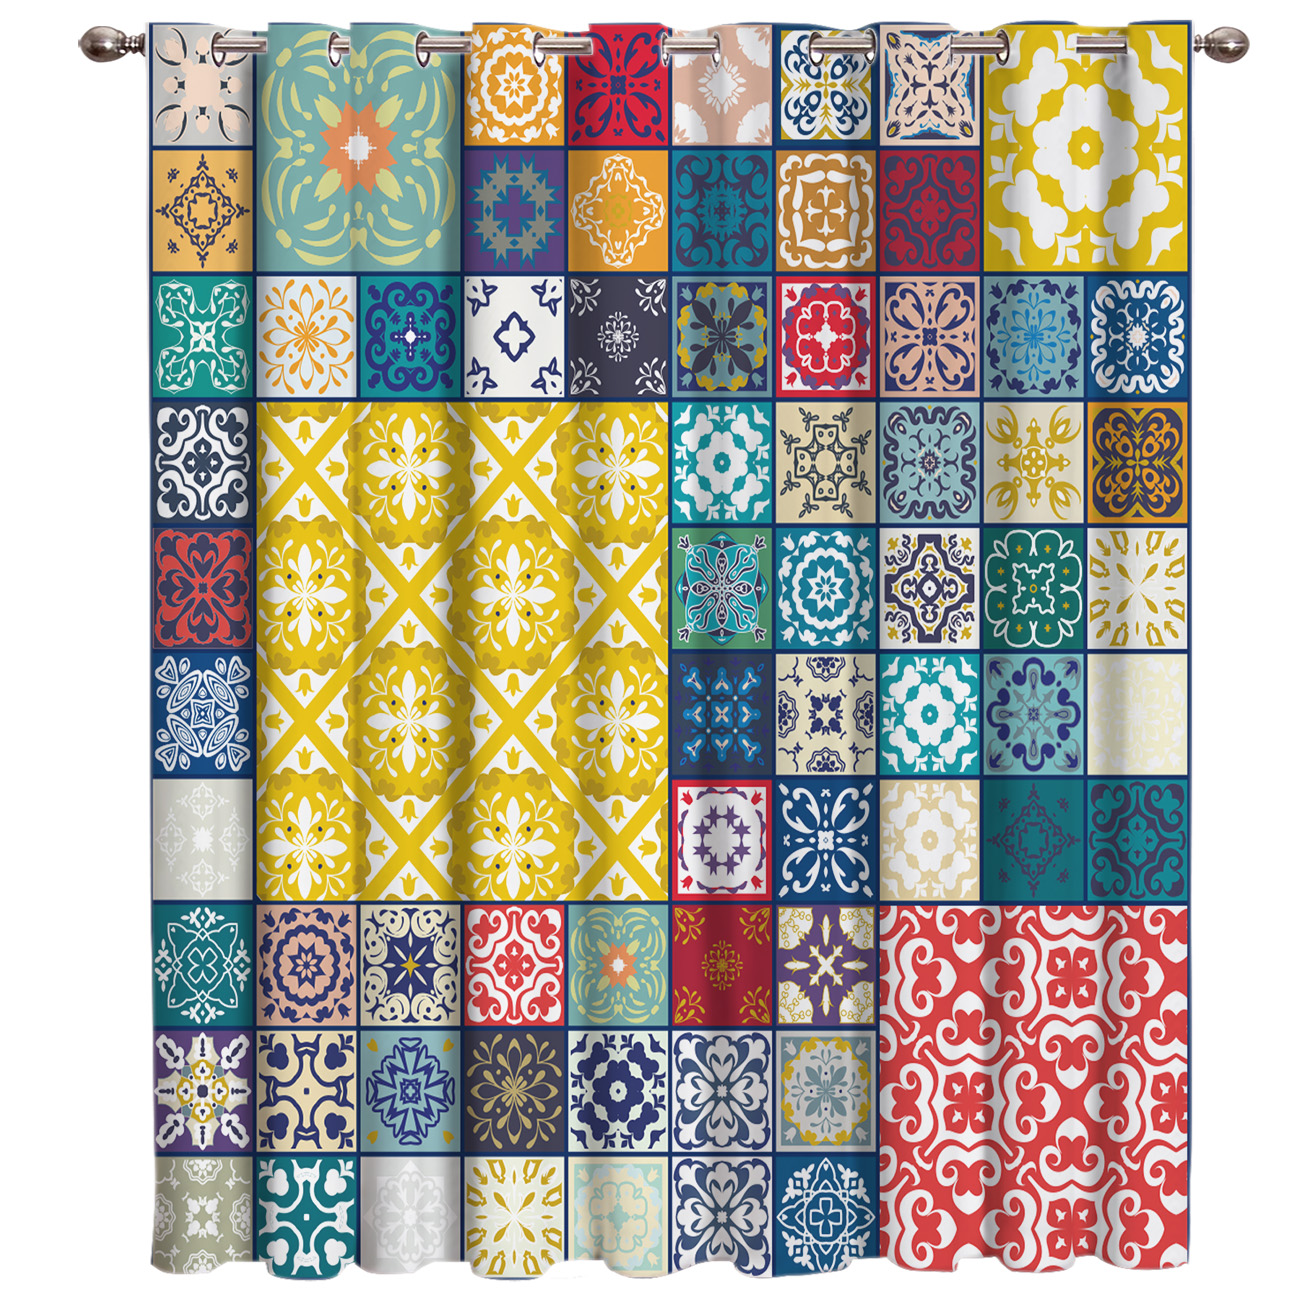 Retro Ethnic Square Pattern Window Curtains Dark Bathroom Bedroom Kitchen Indoor Curtain Panels With Grommets Valance Curtains